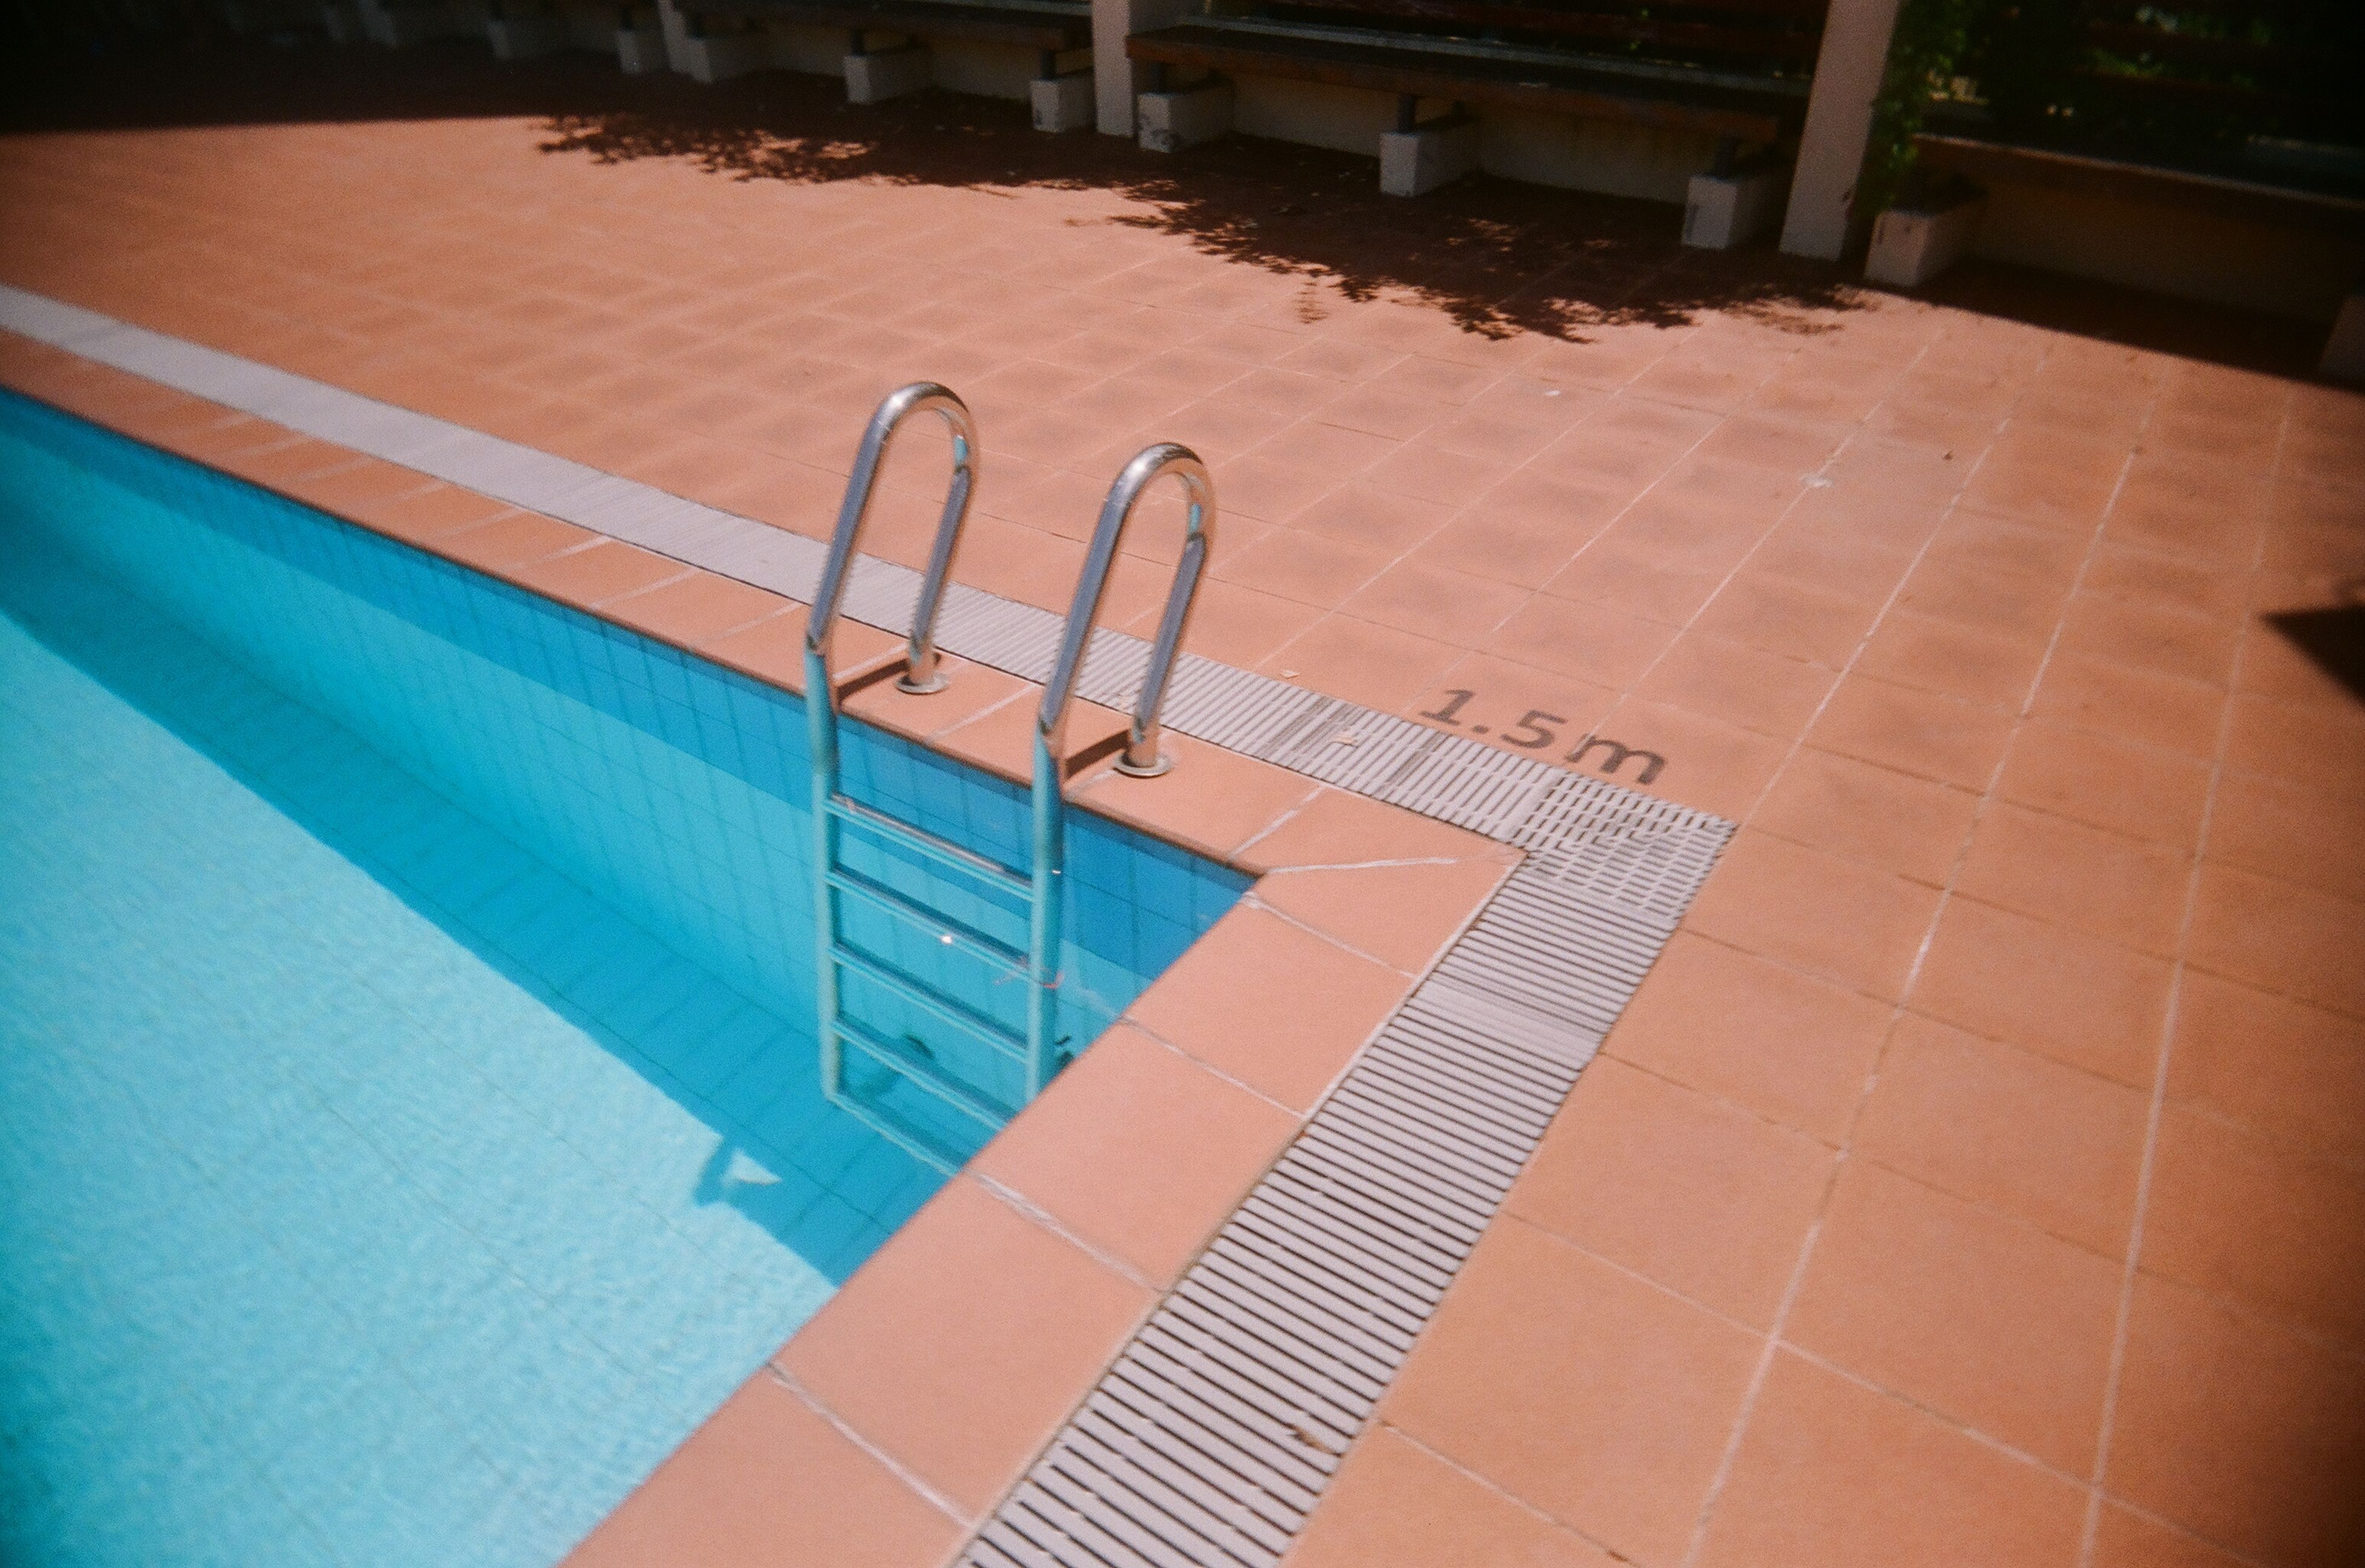 swimming pool, high angle view, absence, water, outdoors, steps, no people, day, tile